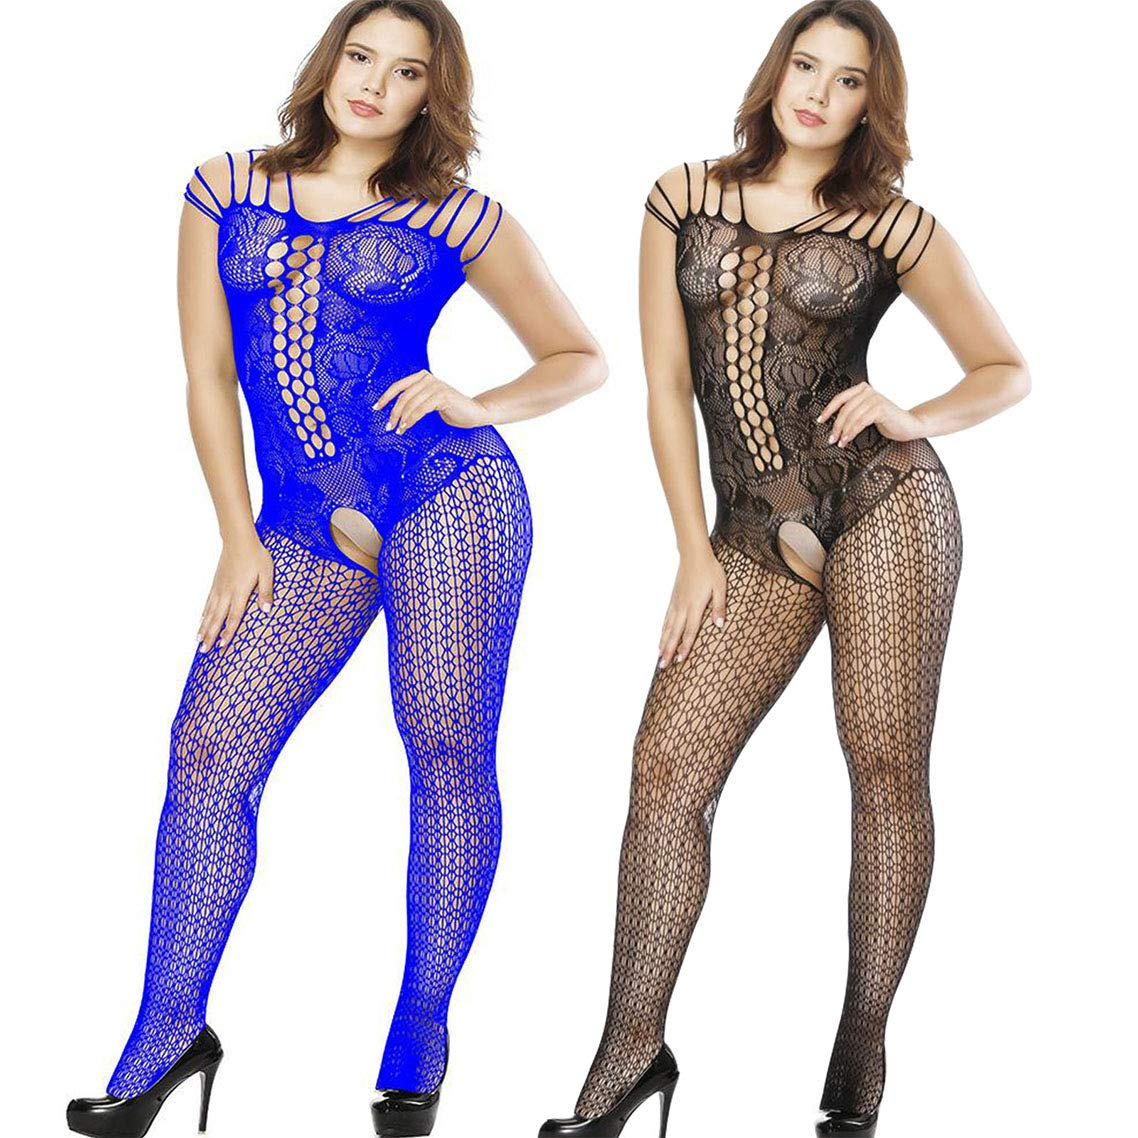 ad2ef8c9bba6b Amazon.com: LOVELYBOBO 2 Pack Crotchless Fishnet Bodystocking Plus Size  Open Crotch Teddy Lingerie for Women (Black+Blue): Clothing